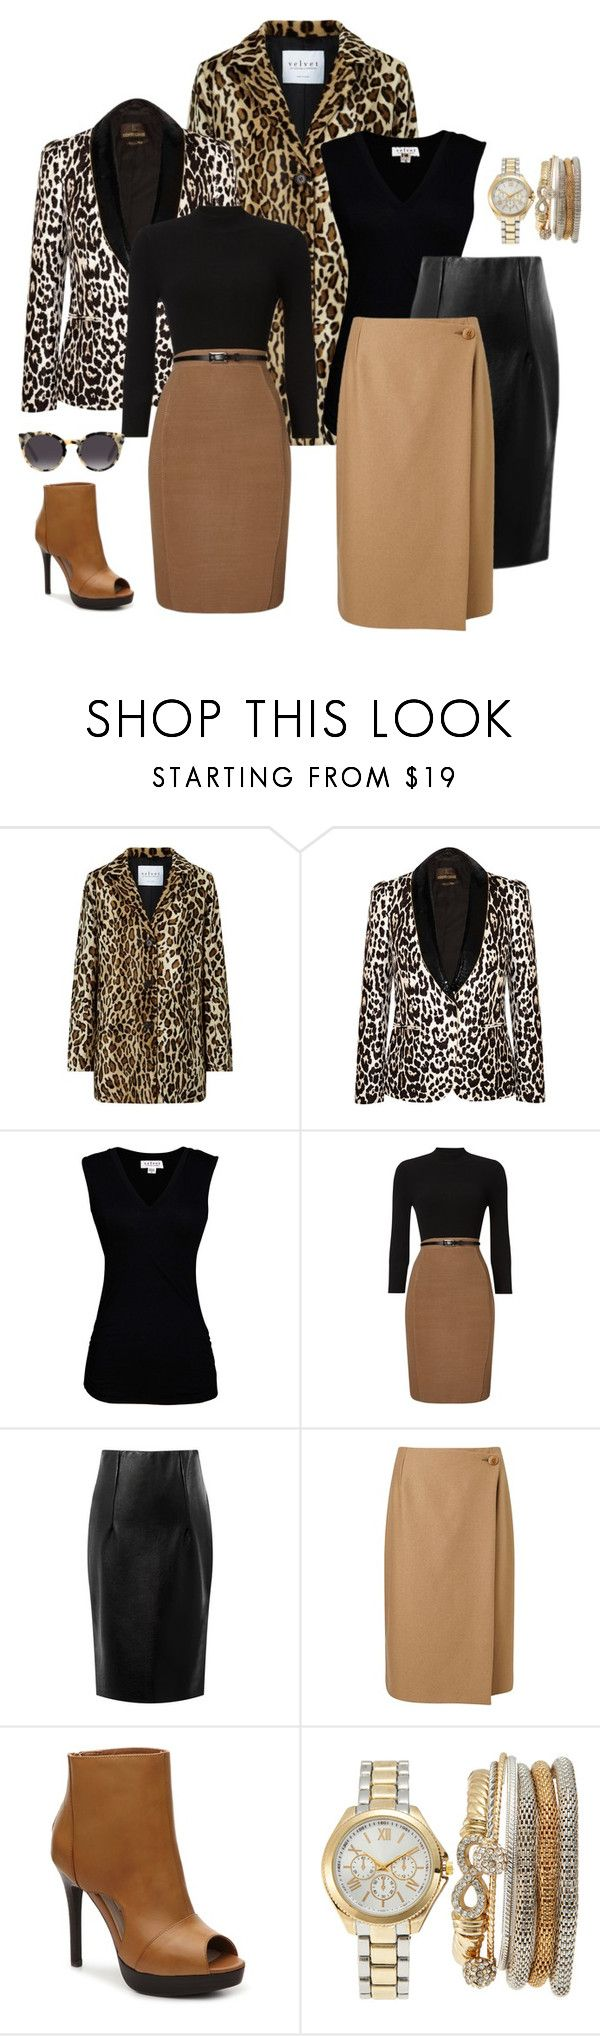 """two outfits for the price of one"" by shays22 ❤ liked on Polyvore featuring Velvet, Roberto Cavalli, Velvet by Graham & Spencer, Phase Eight, Jigsaw, Two Lips and Jessica Carlyle"